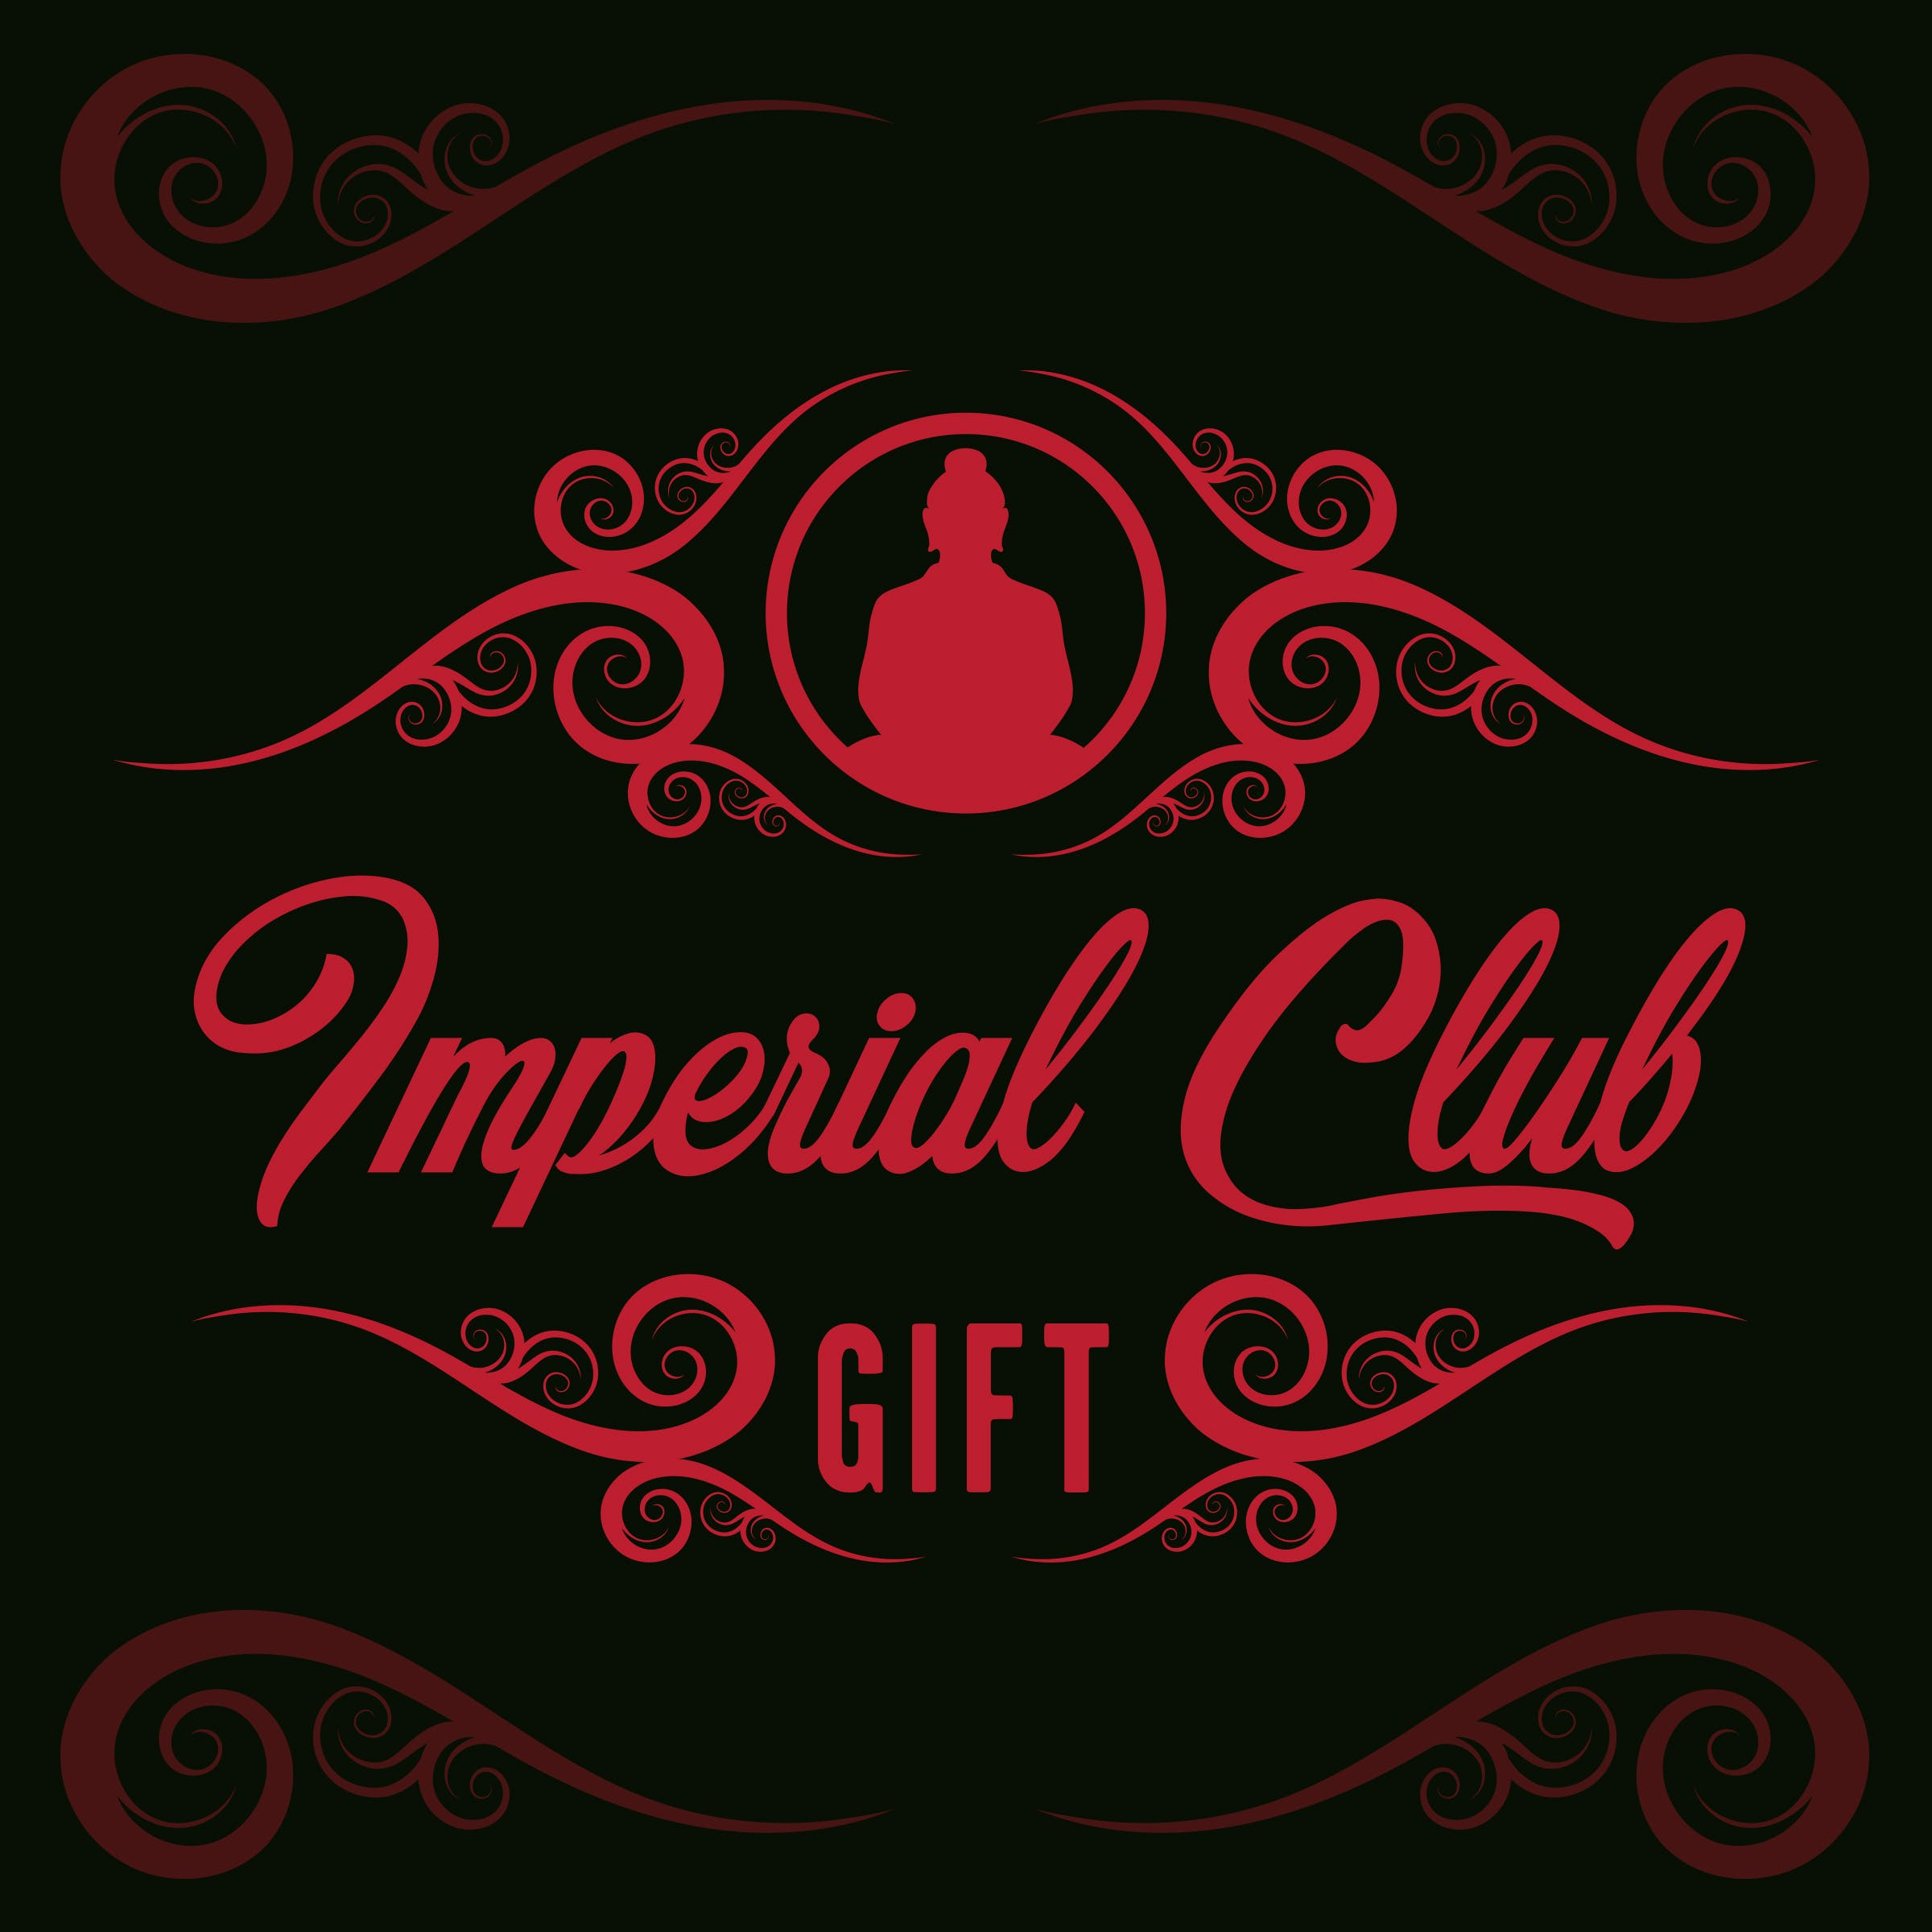 Gift a 2021 Imperial Club Membership